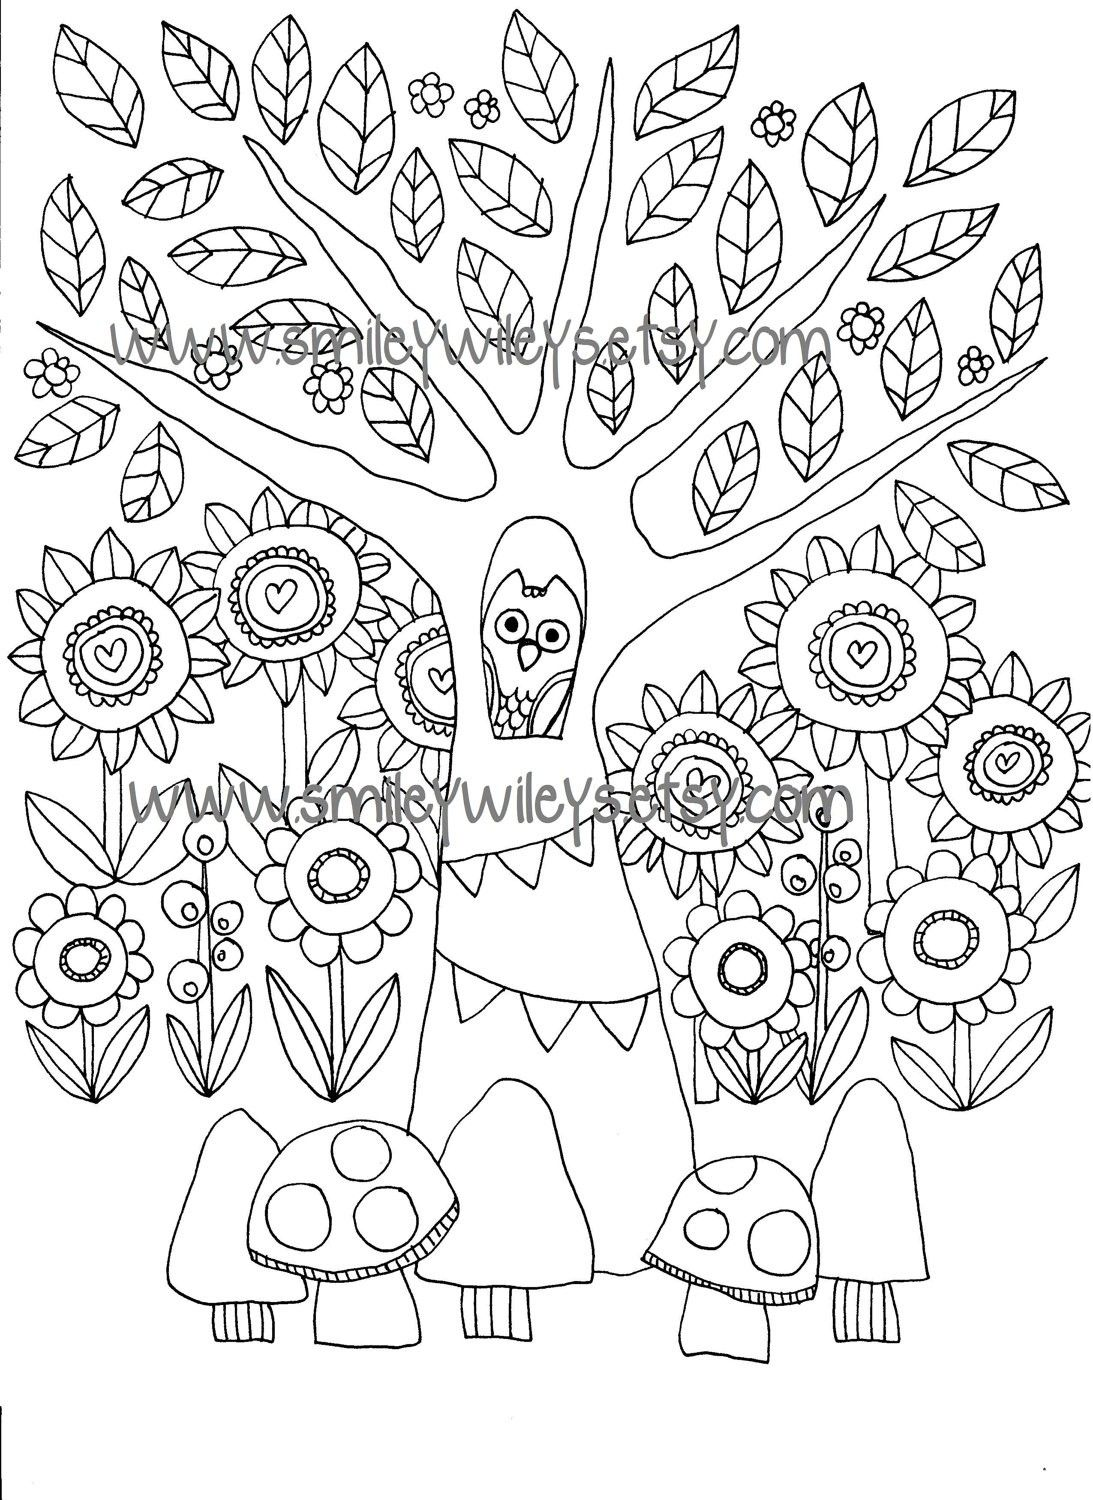 owl coloring pages | Cute Owl Printable Coloring Pages free download. Get this beautiful ...